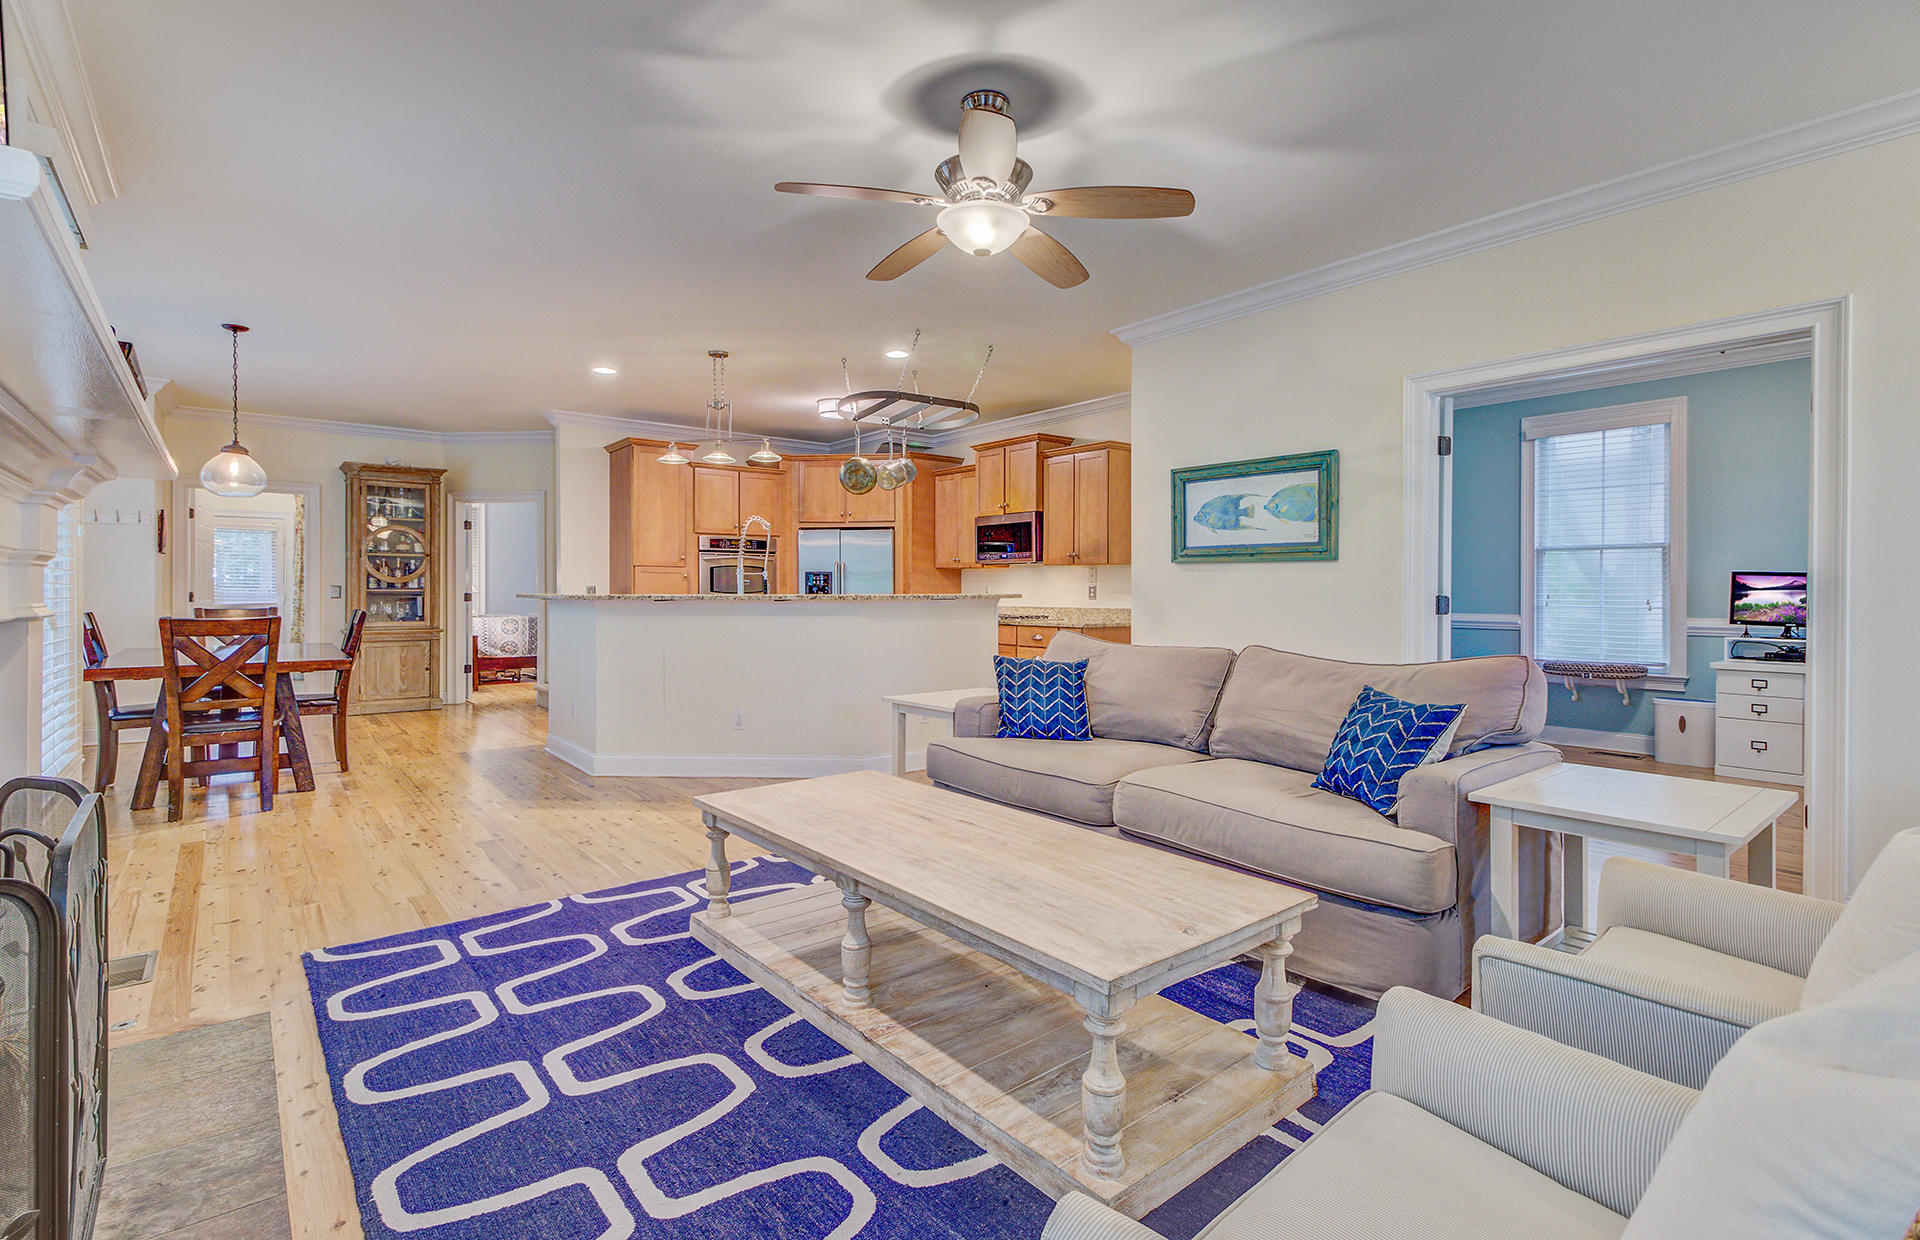 The Villages In St Johns Woods Homes For Sale - 5032 Coral Reef, Johns Island, SC - 32